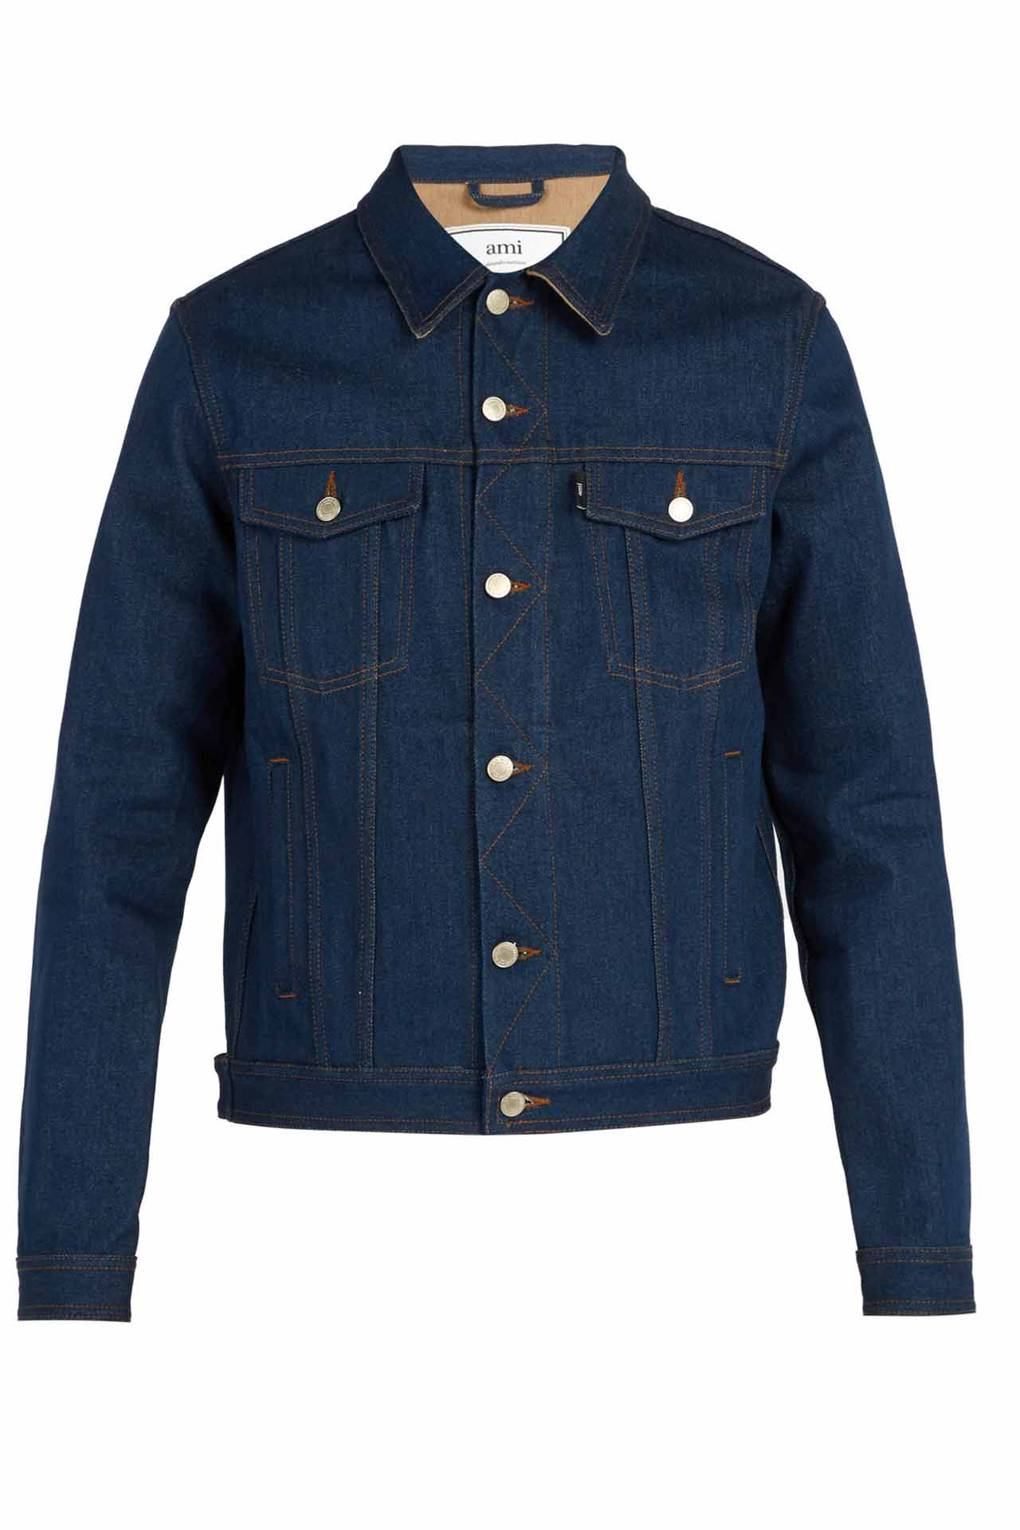 Mens park jacket is a must-have wardrobe item